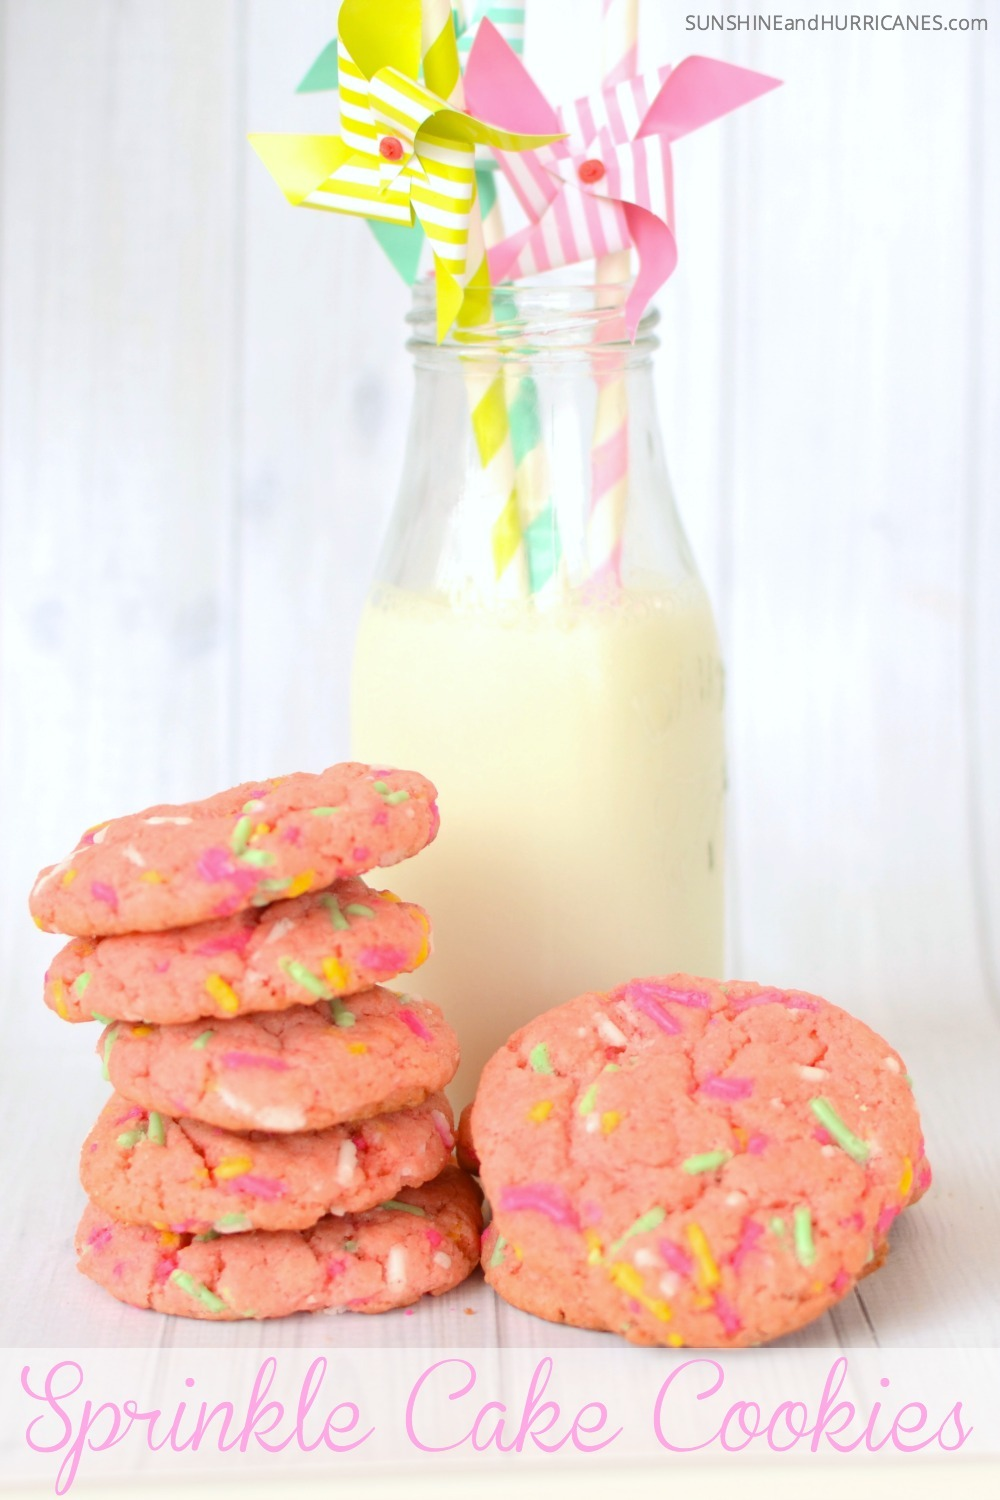 Looking for a quick and easy cookie recipe for a class party, bake sale or even a princess tea party? These tasty cake box cookies are so easy to make and can even be customize to your own tastes or even a theme. Bake them together with your kids or they are even easy enough for older kids to make themselves. Sprinkle Cake Cookies. SunshineandHurricanes.com